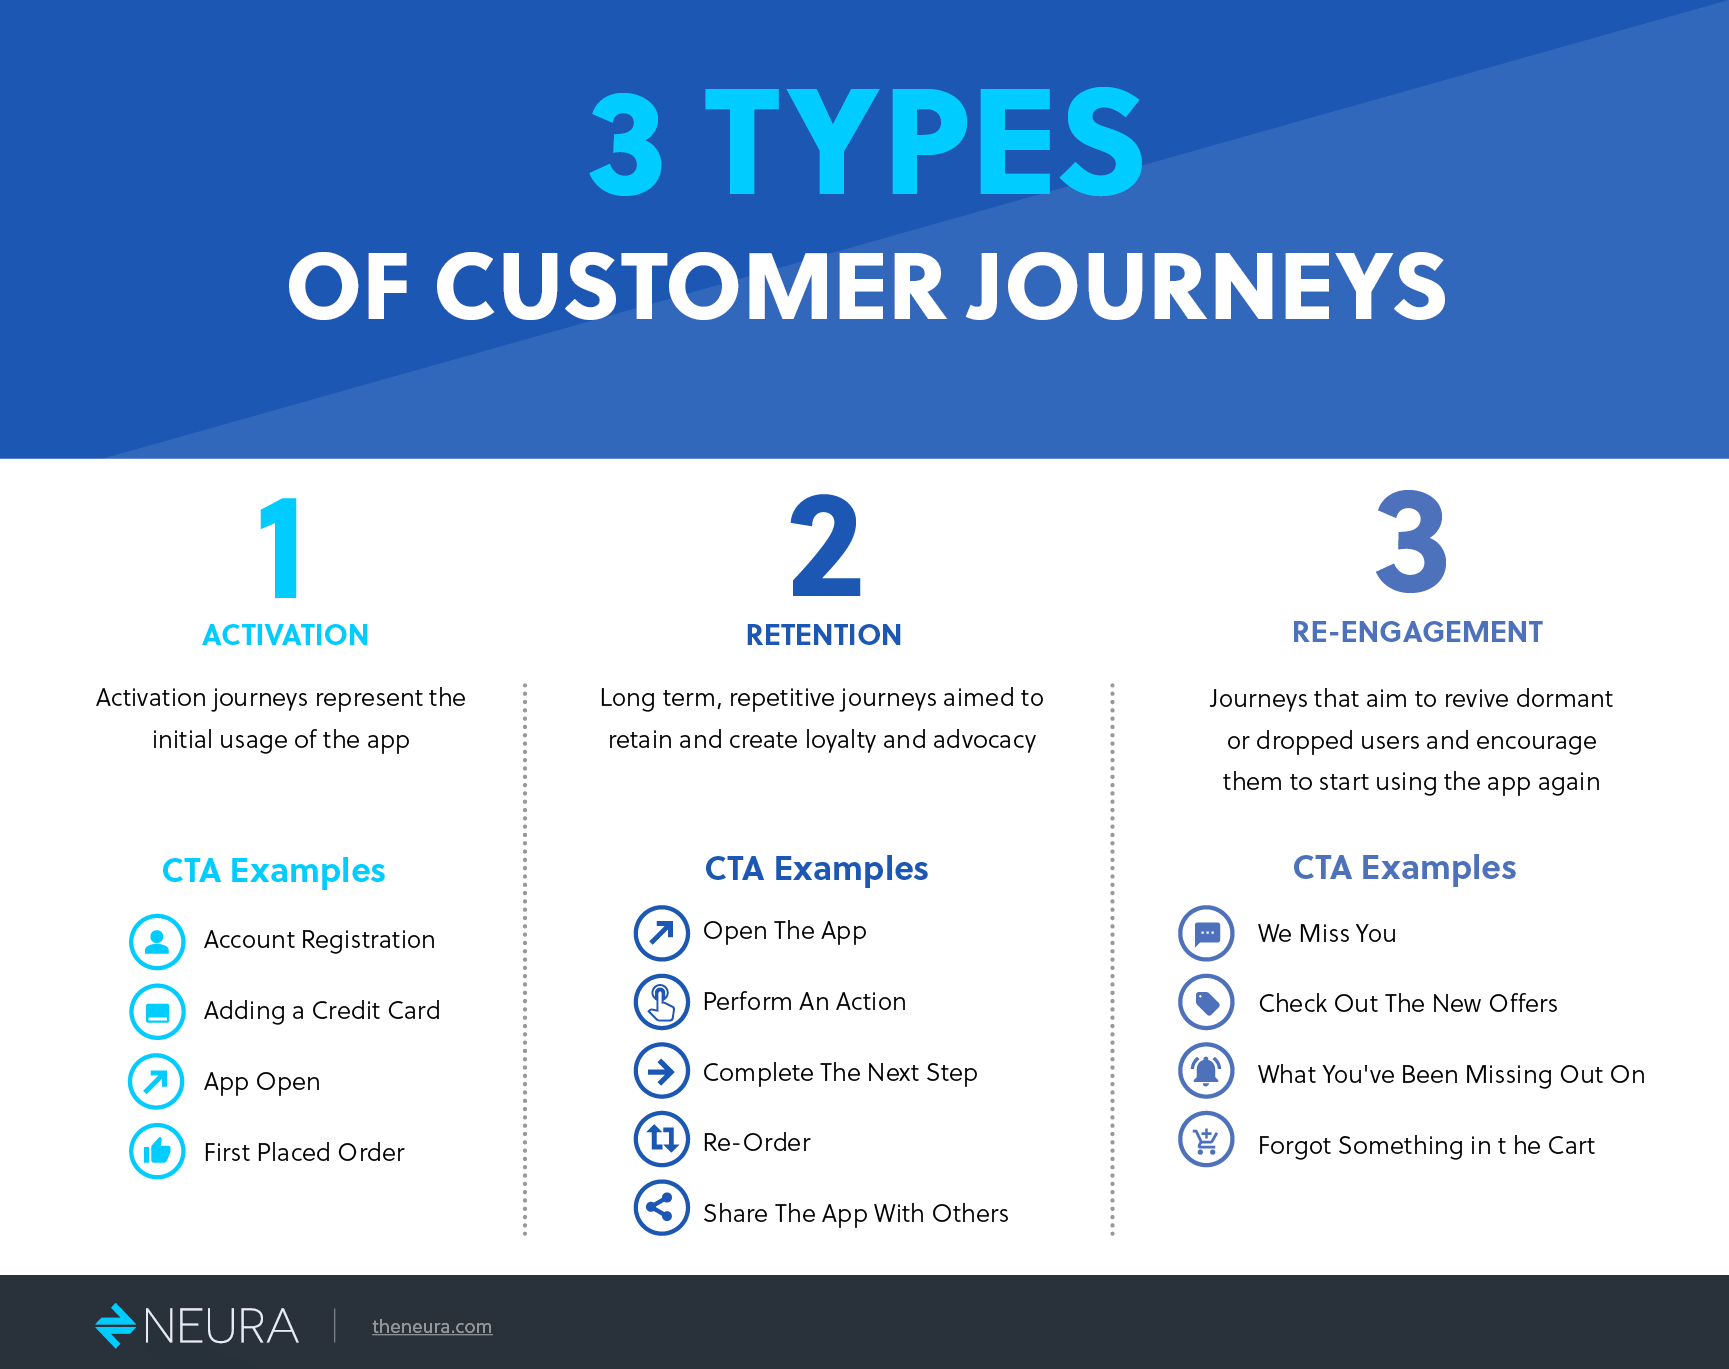 3 types of customer journeys